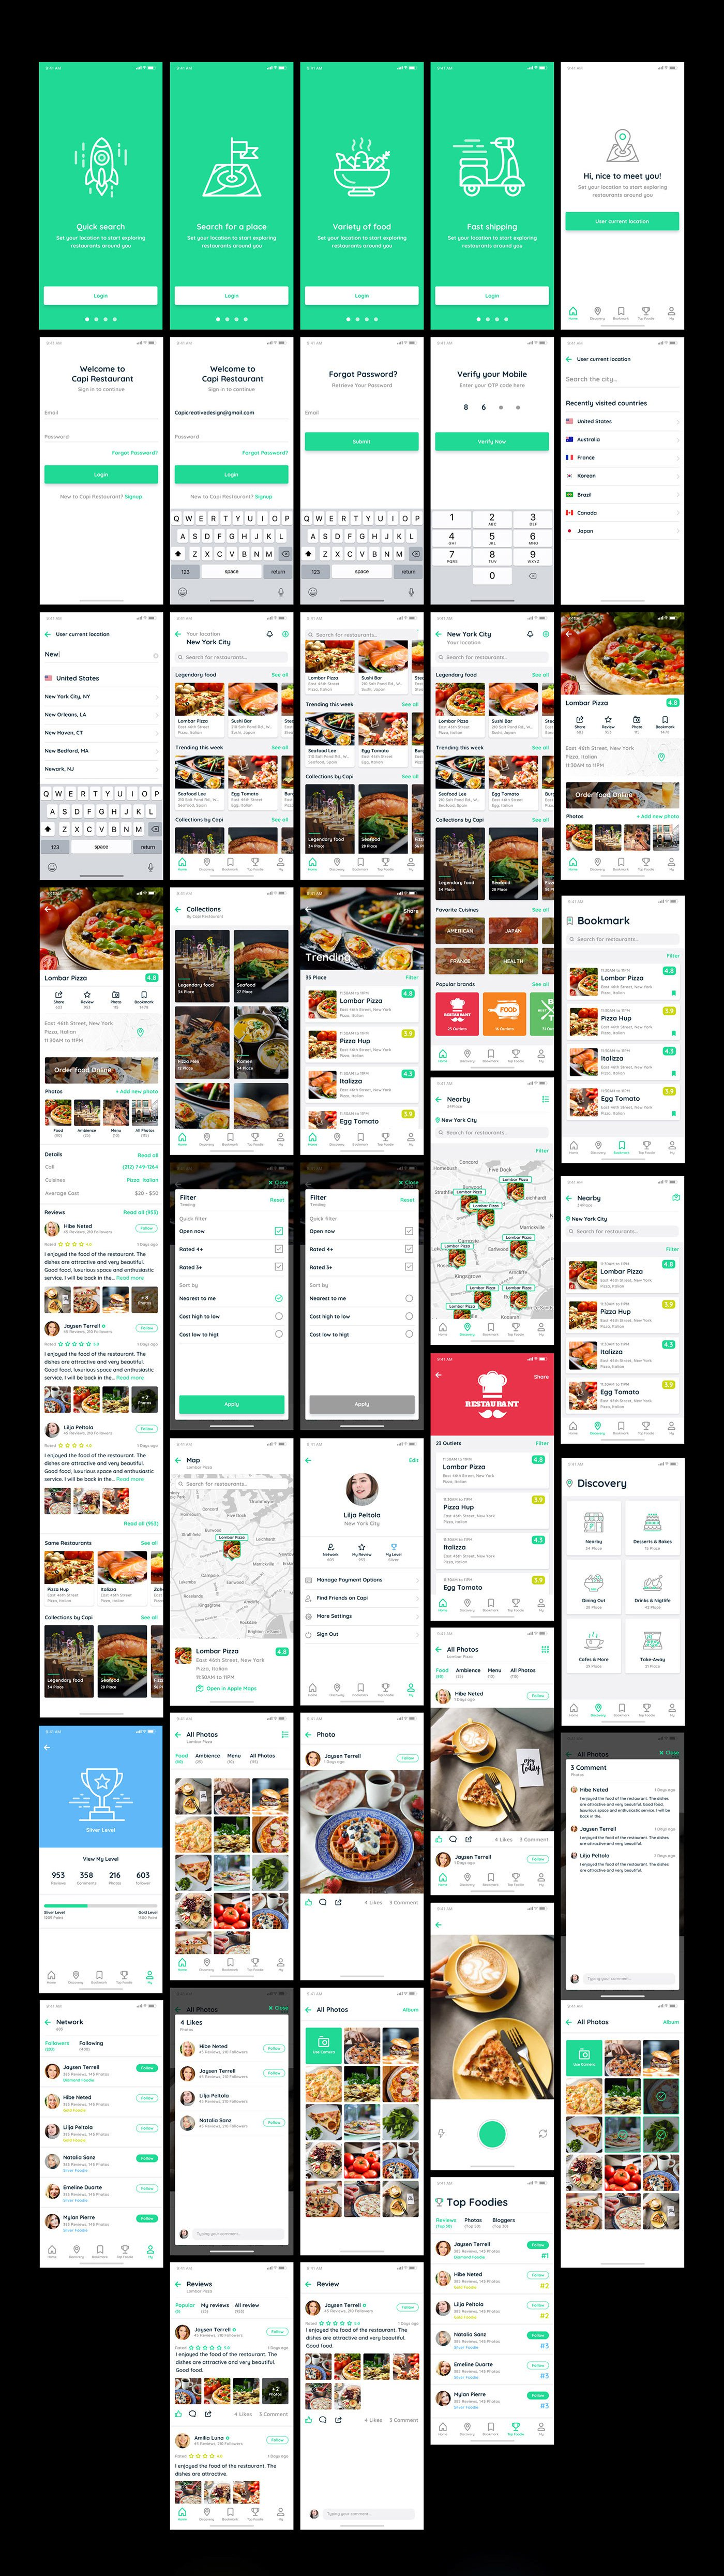 Free Capi Restaurant iOS UI Kit